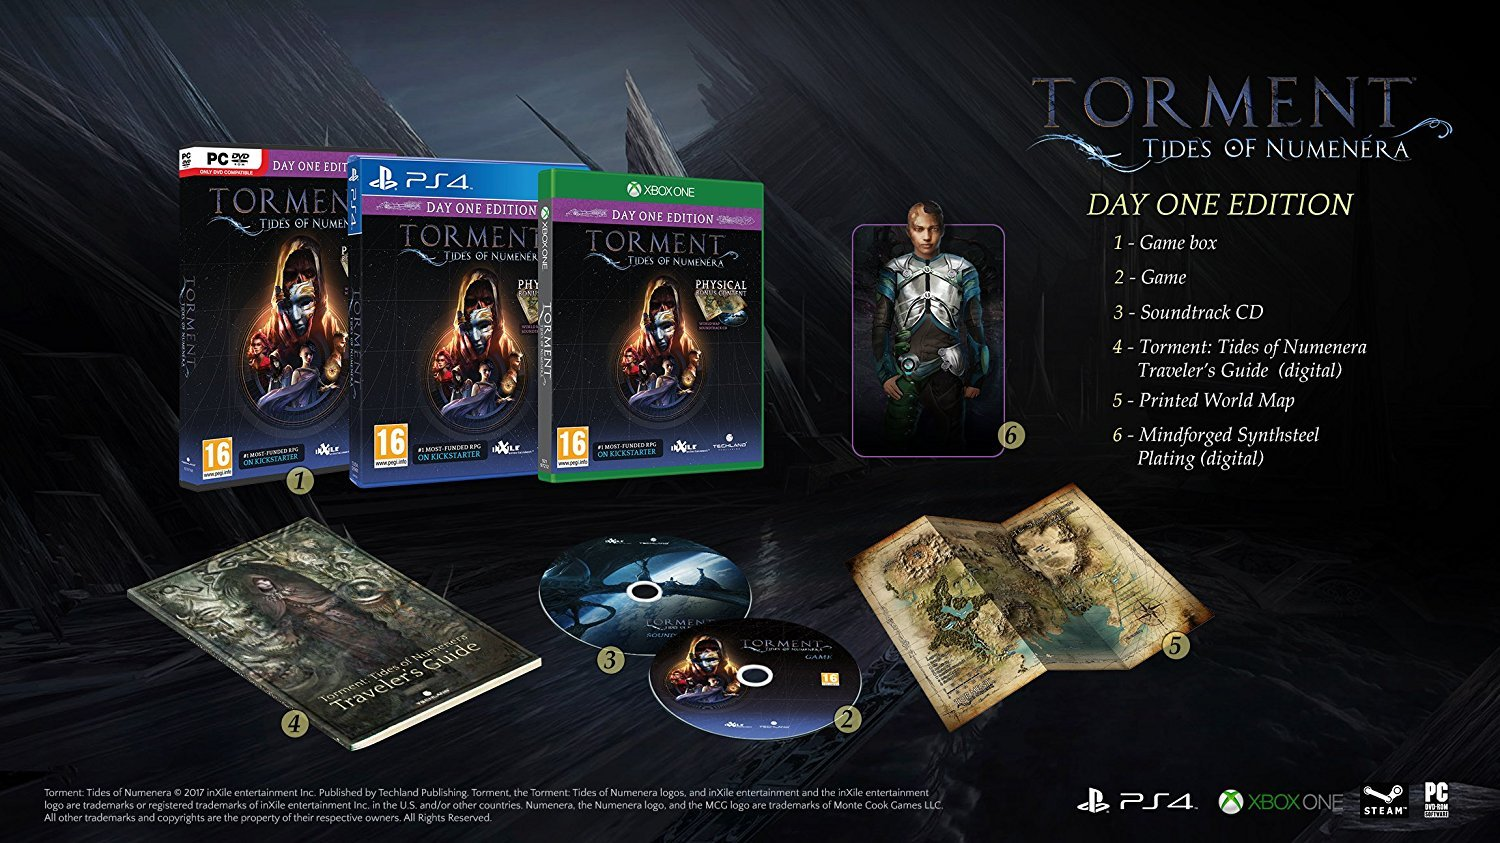 Torment: Tides of Numenera Day One Edition for PS4 image